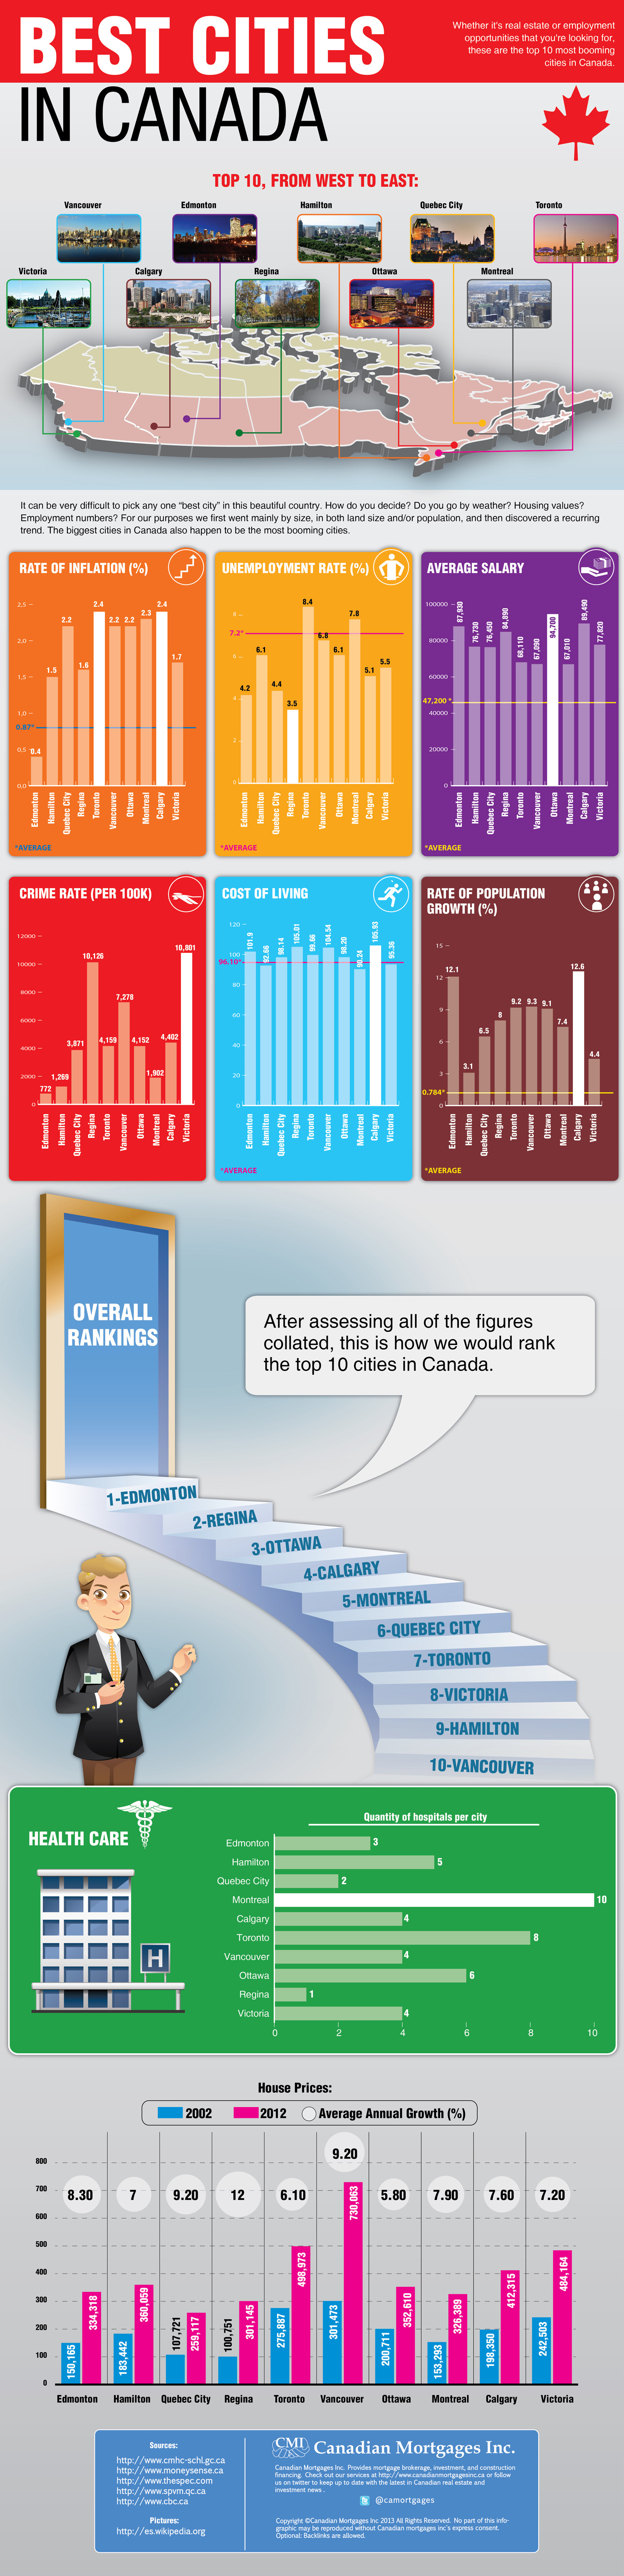 Top 10 Places to Live in Canada Infographic